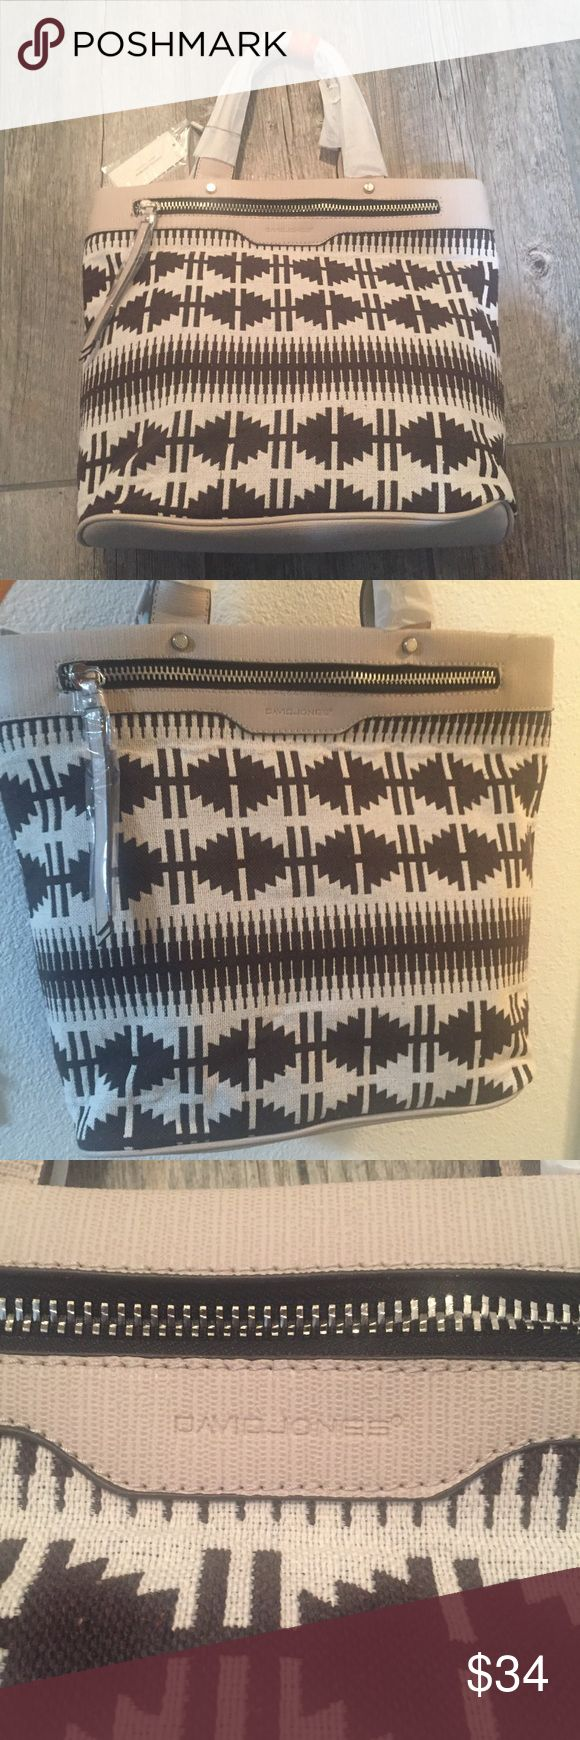 BNWT David Jones handbag Great design, brand new with tags attached. Great for everyday, school or bag for work! David Jones Bags Totes